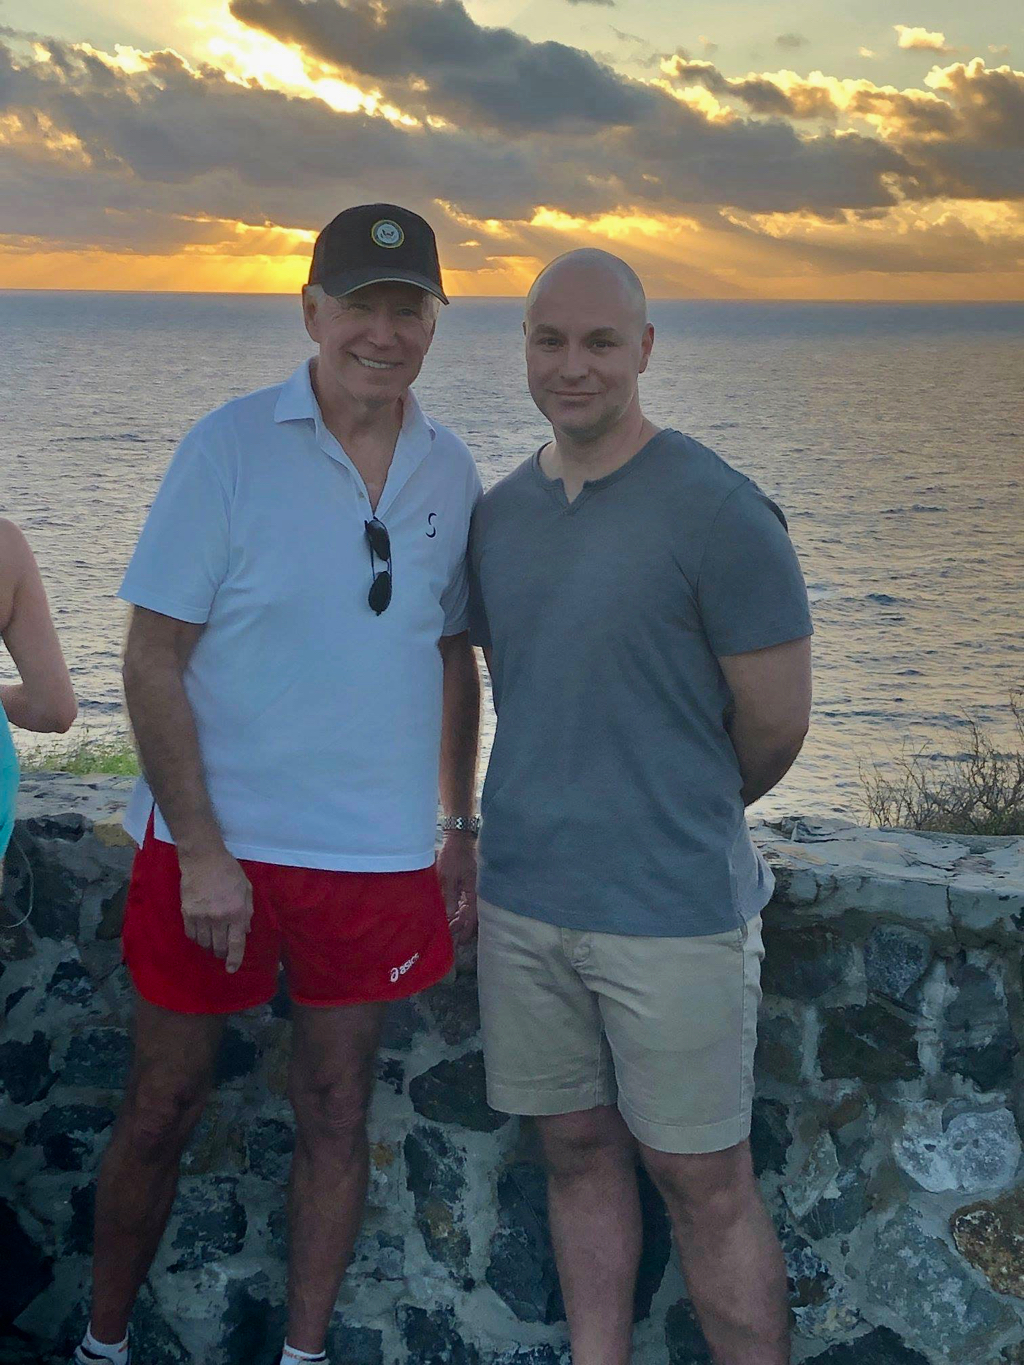 The familiar St. Croix landmark of Point Udall is clearly recognizable in this Facebook photo reportedly with Ohio resident George Summers. (Facebook photo)